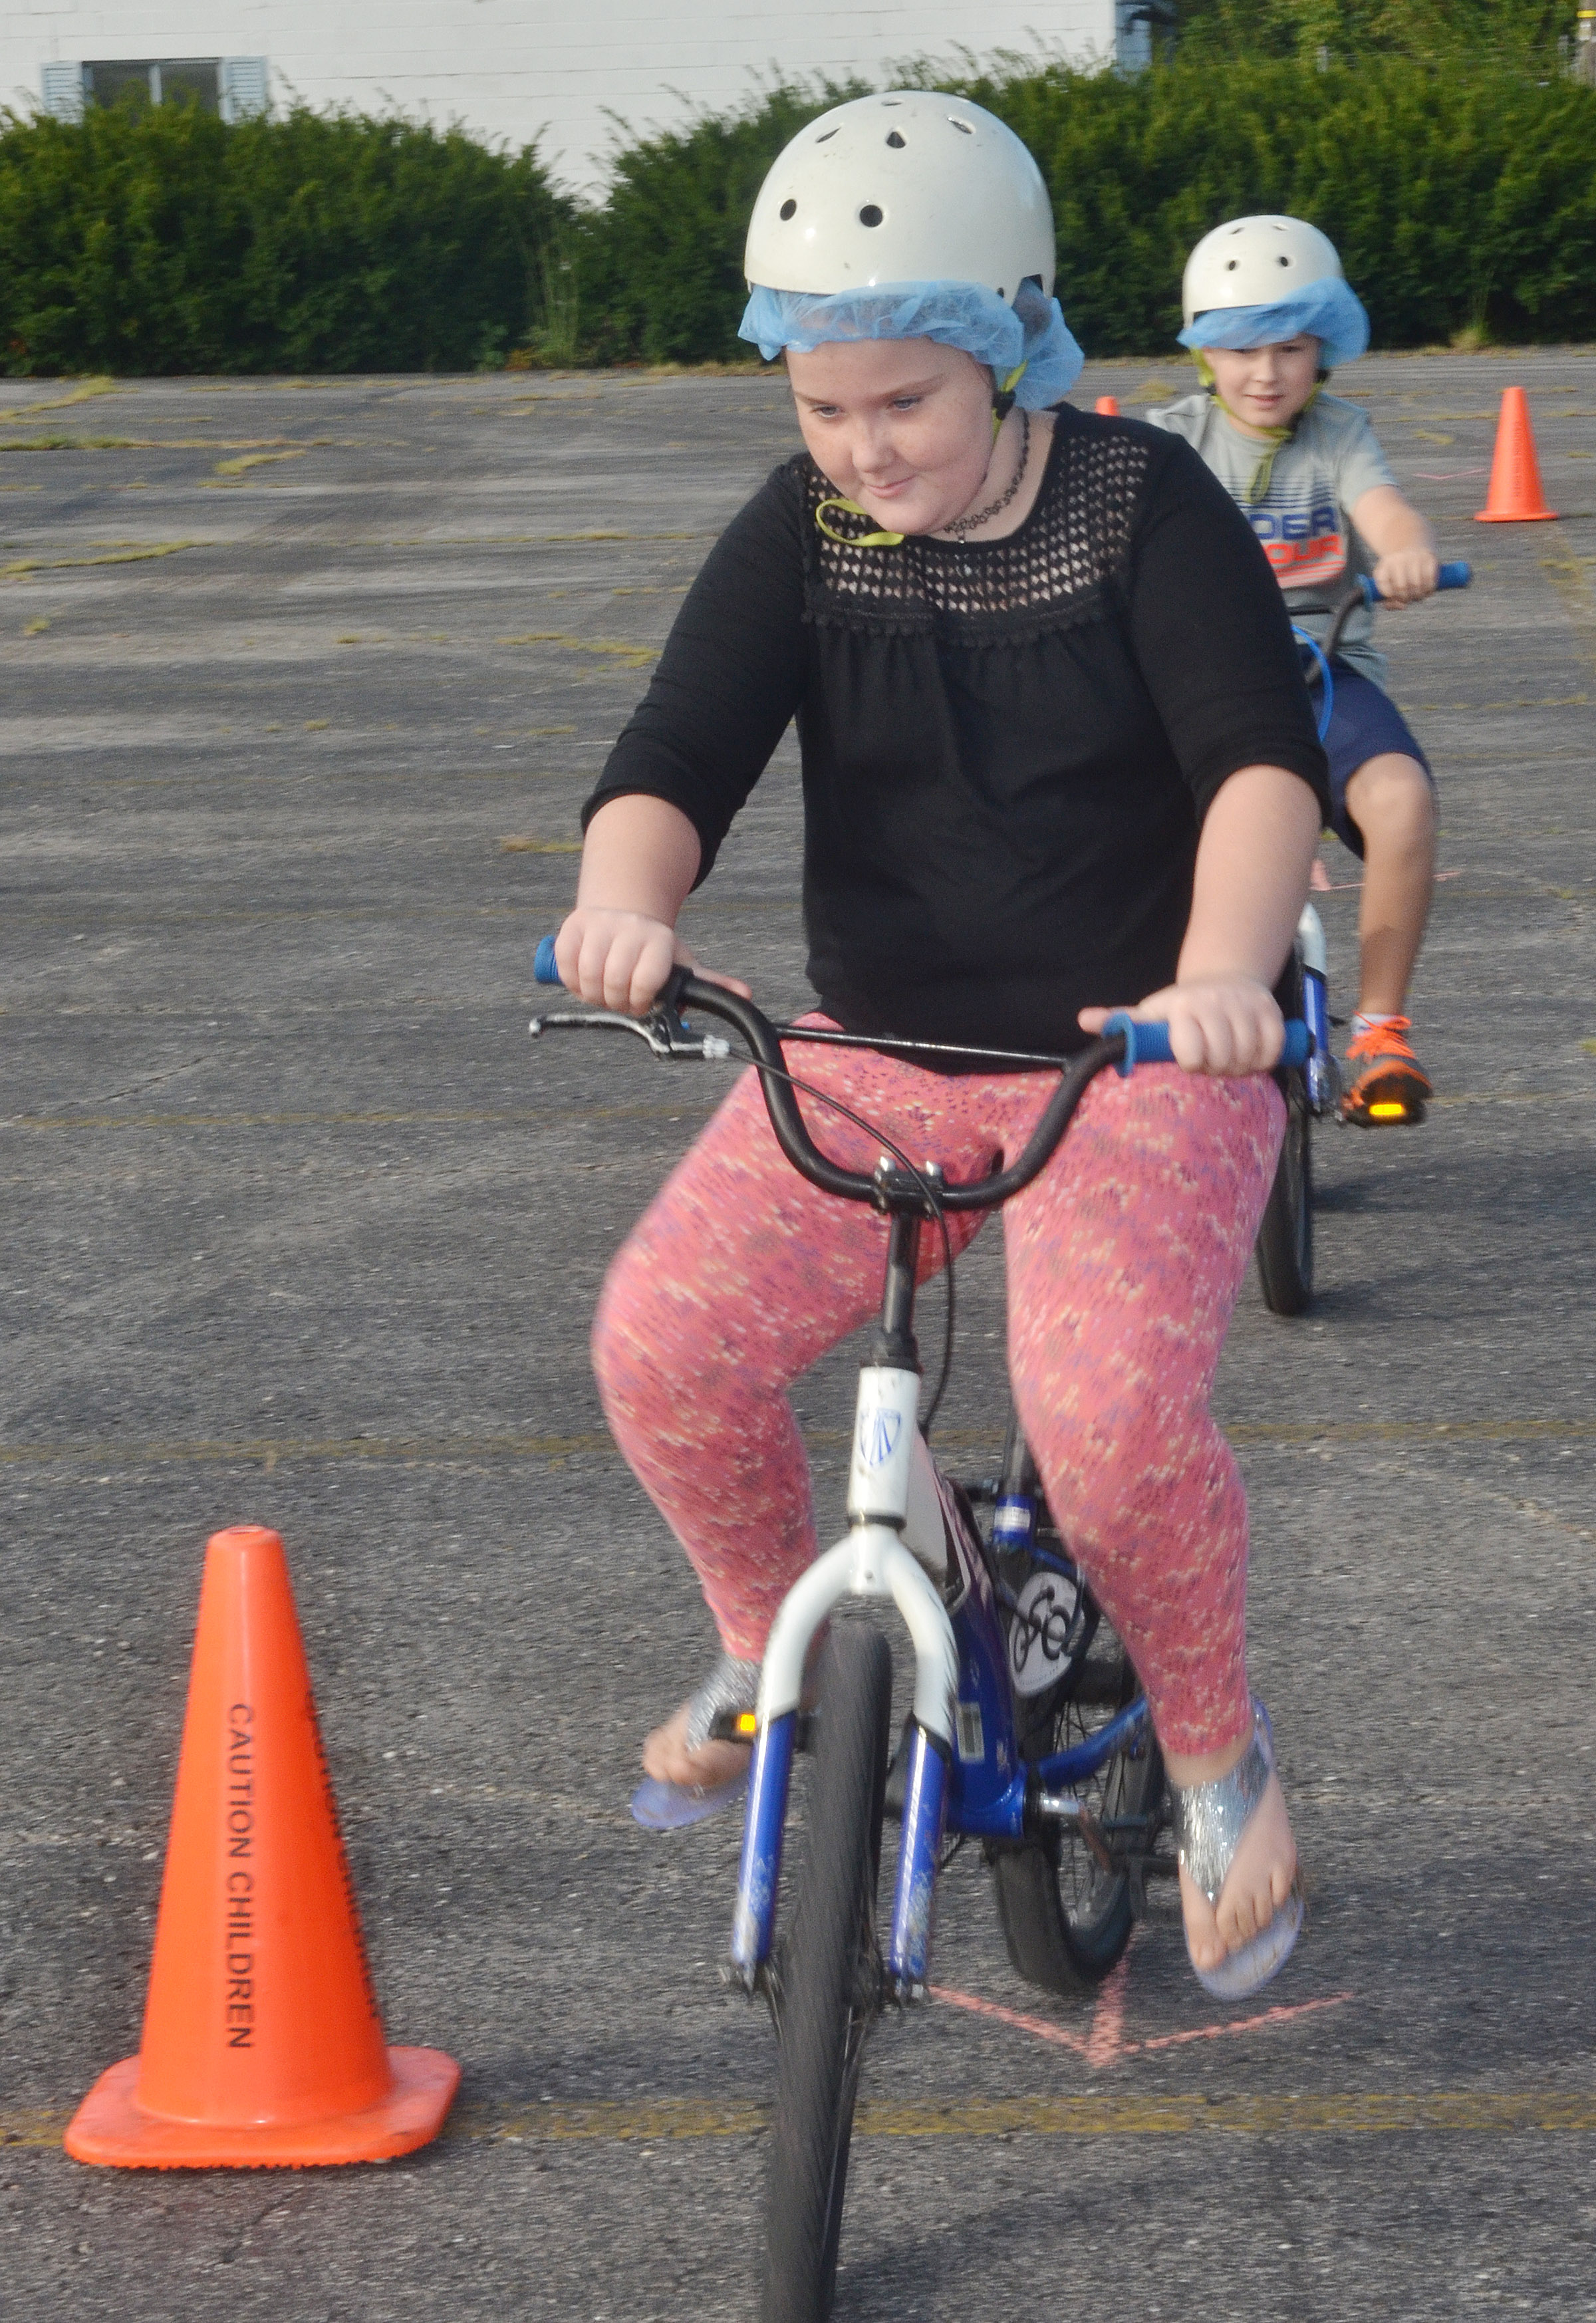 CES fourth-grader Madison Philpott rides her bike through the obstacle course.